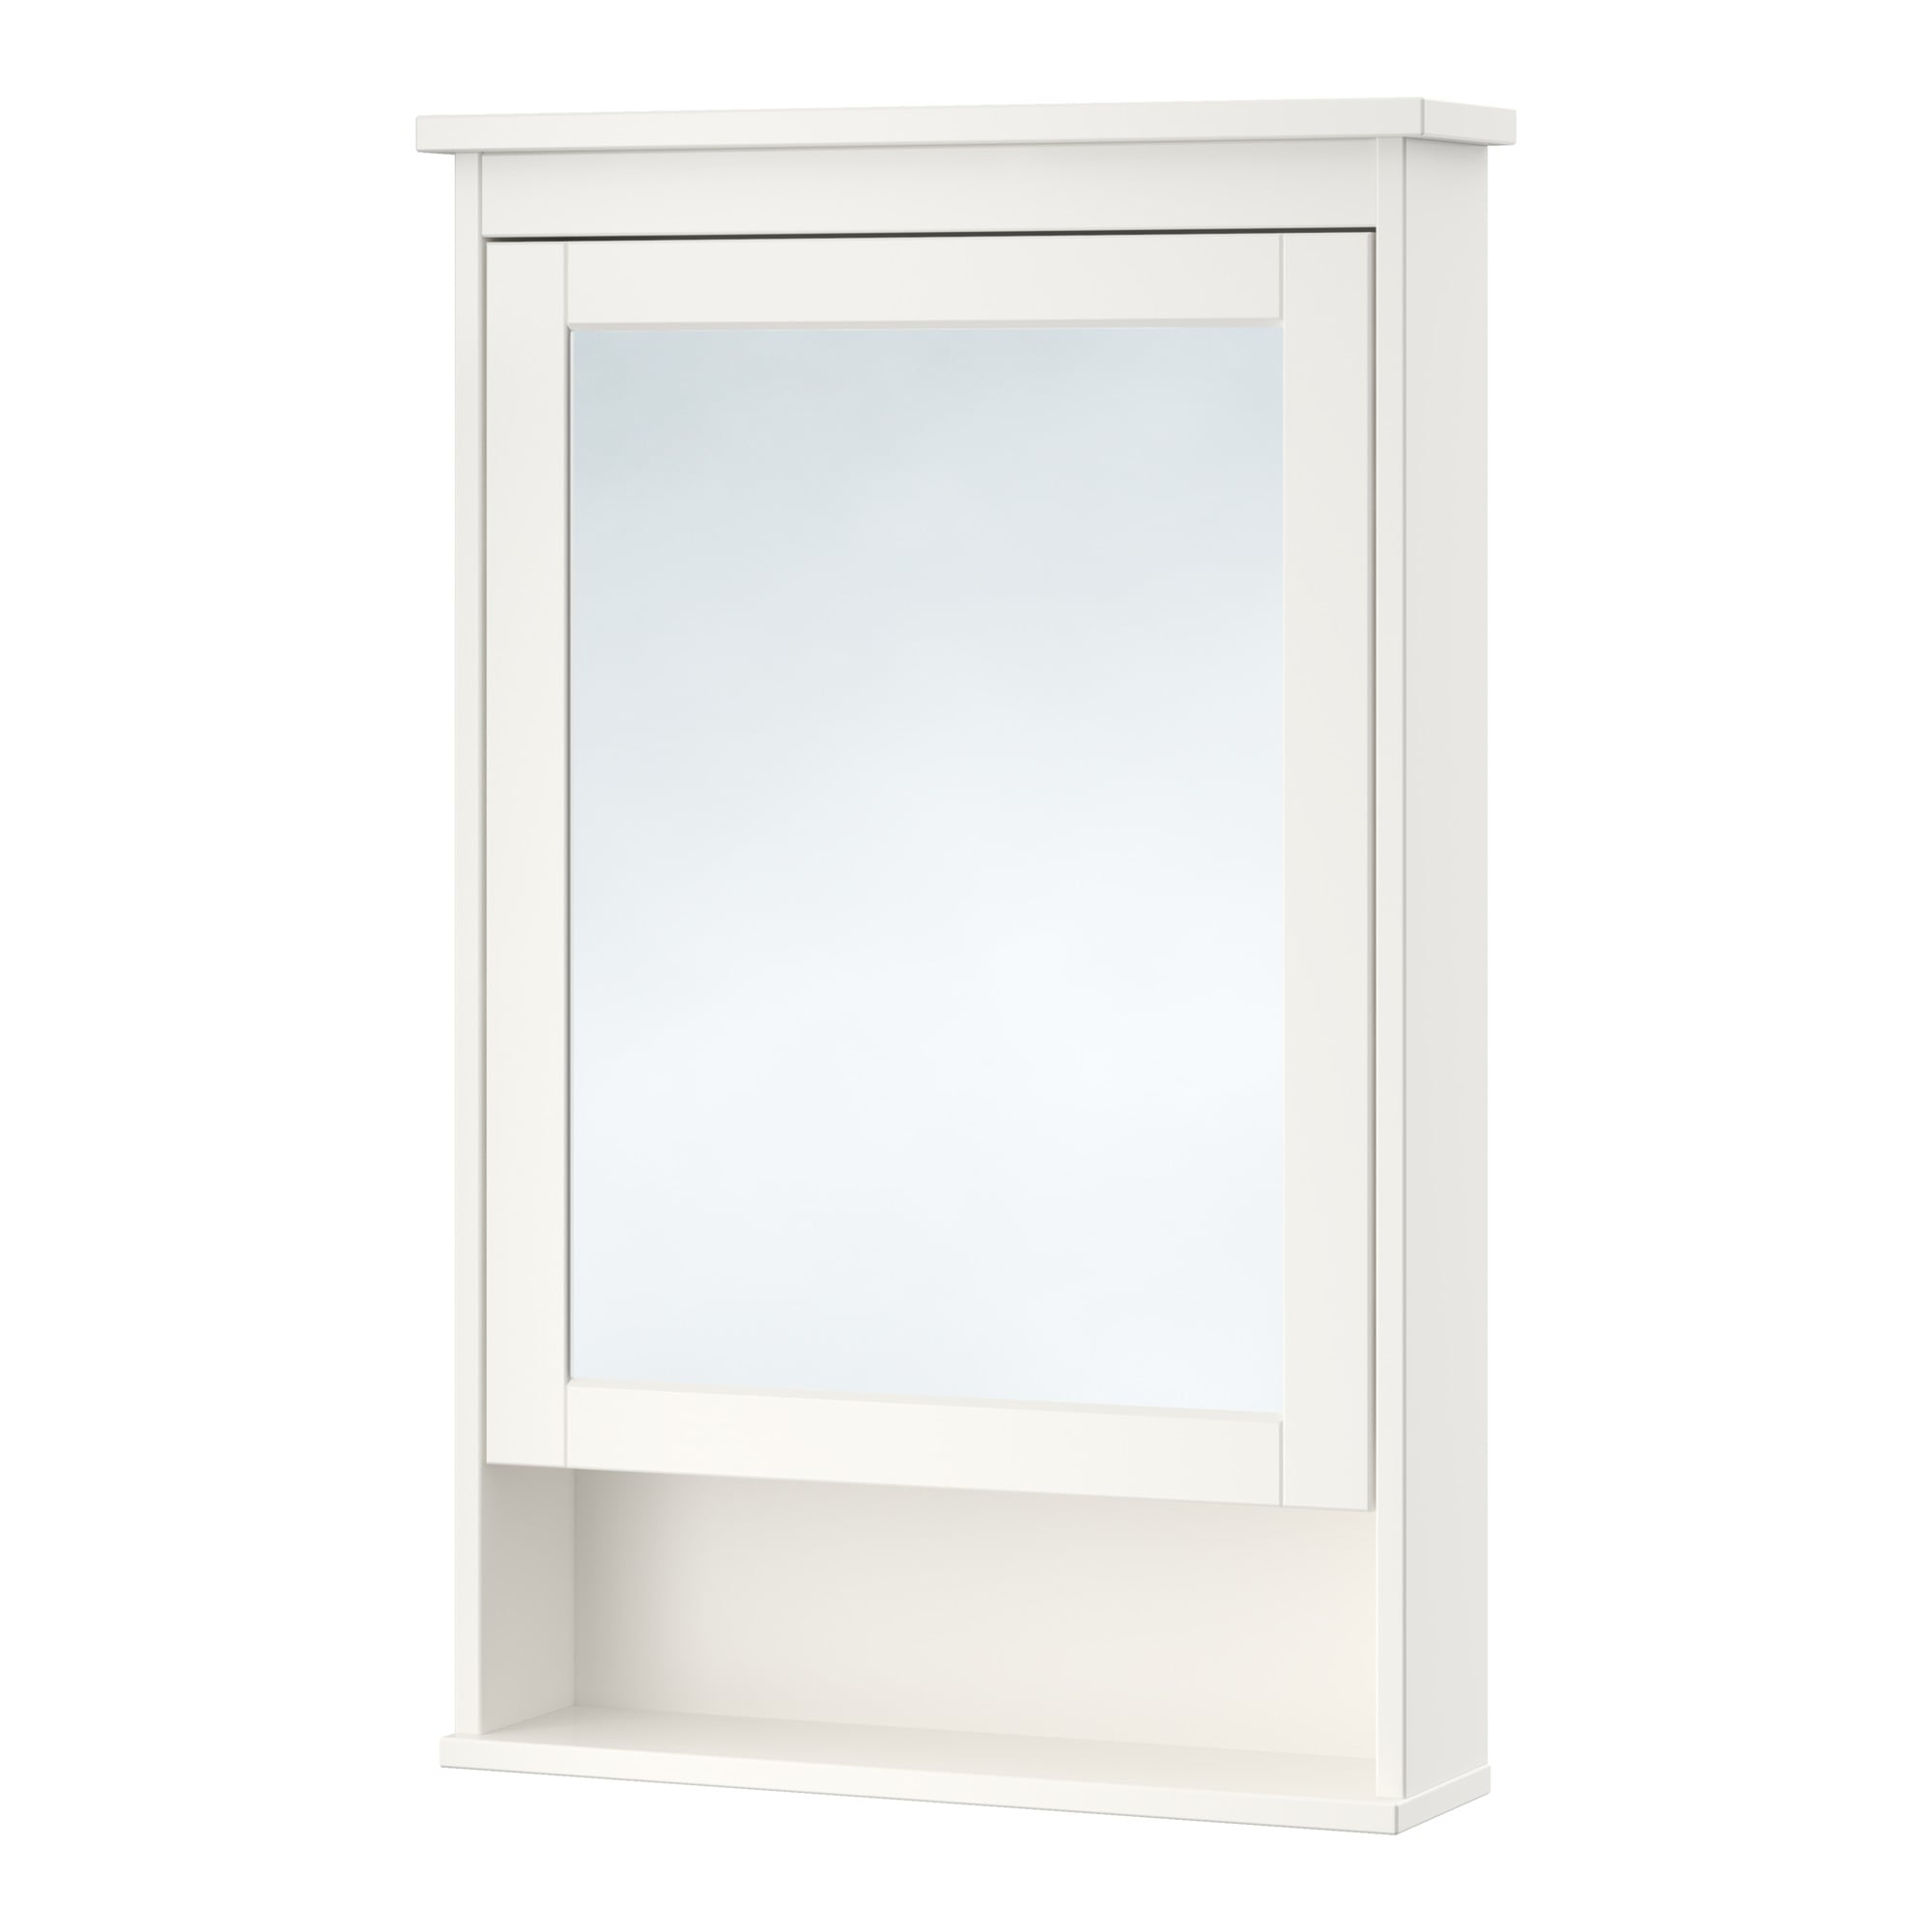 Framed Bathroom Mirrors At Ikea hemnes bathroom series. - ikea